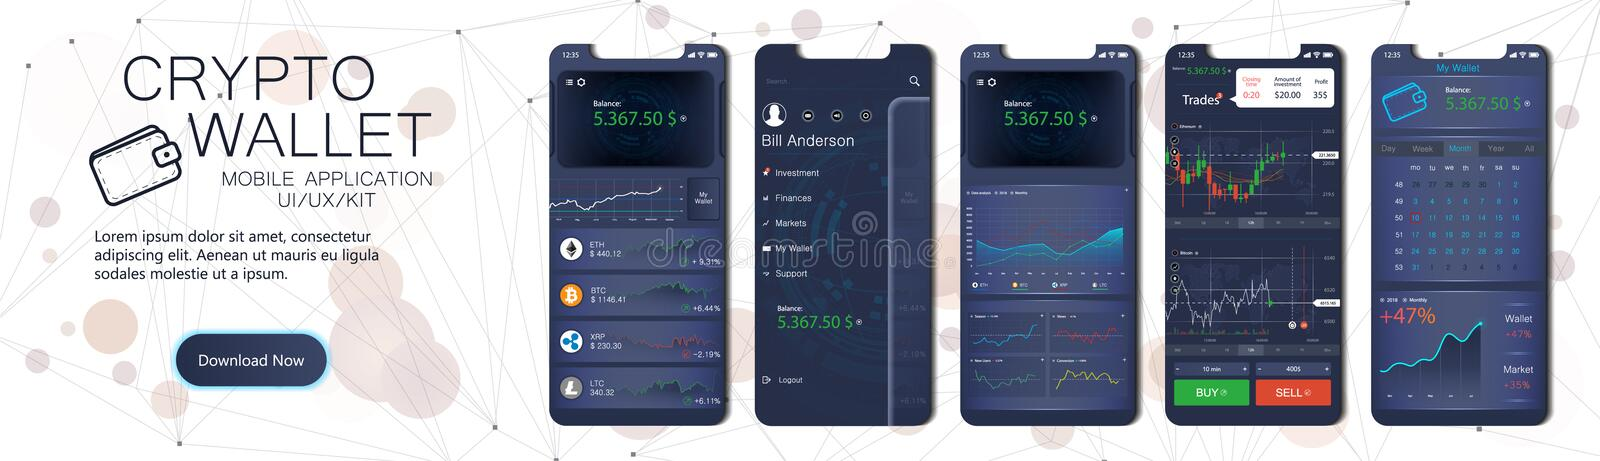 Crypto wallet mobile app template royalty free illustration